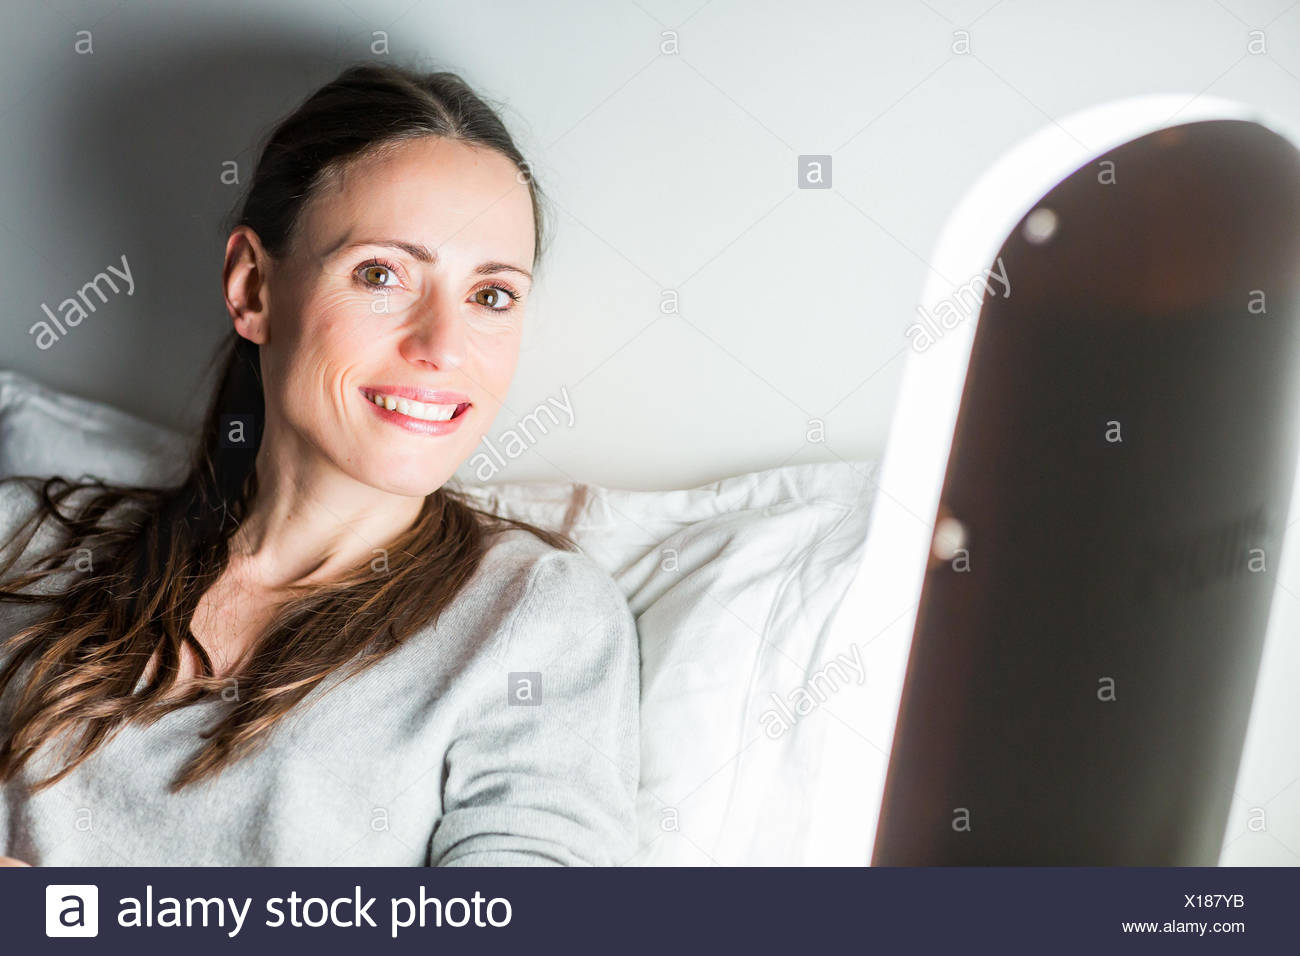 Light therapy, or phototherapy : treatment of depression with light. - Stock Image